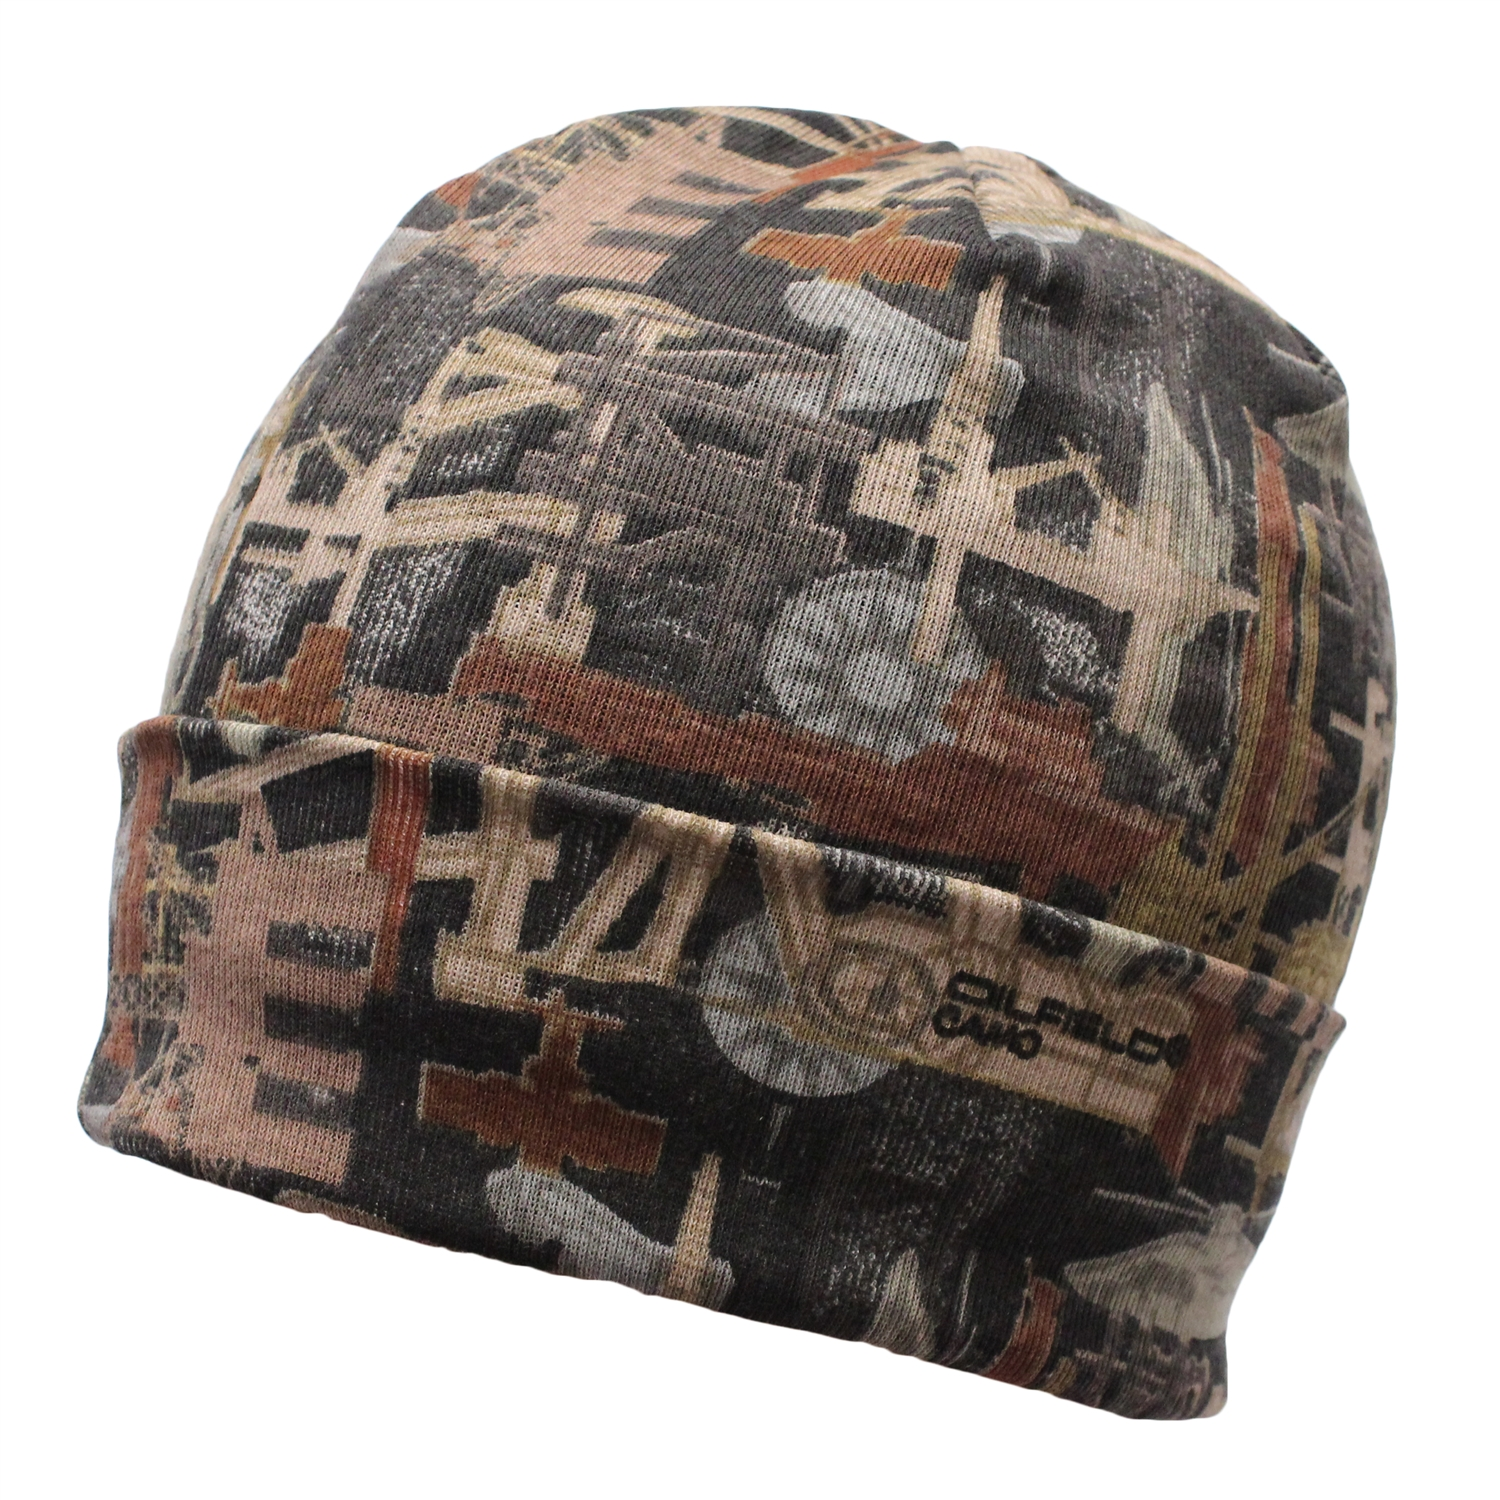 Oilfield Camo 12 Inch Cotton Twill Beanie LCB12  11.99 In stock Eligible  for free shipping ... 85f668e157c